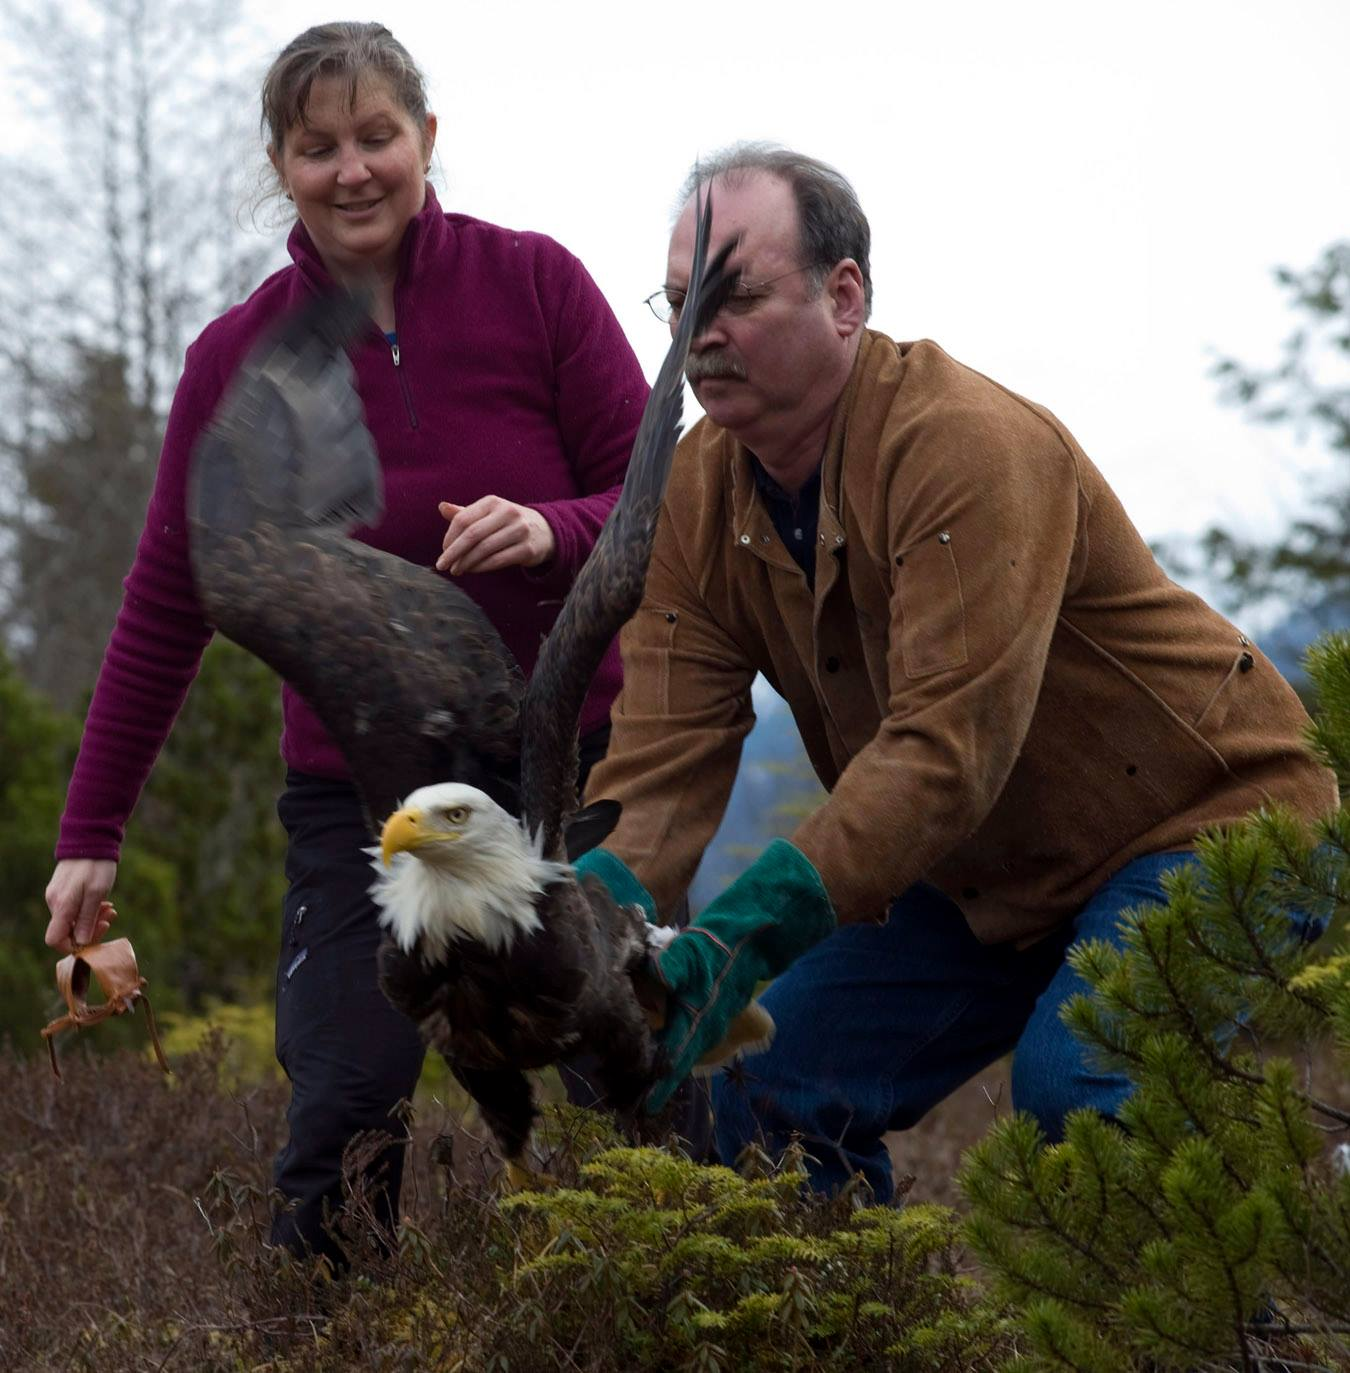 Releasing a healed mature bald eagle back into the wild. Photo courtesy of the Alaska Raptor Center.